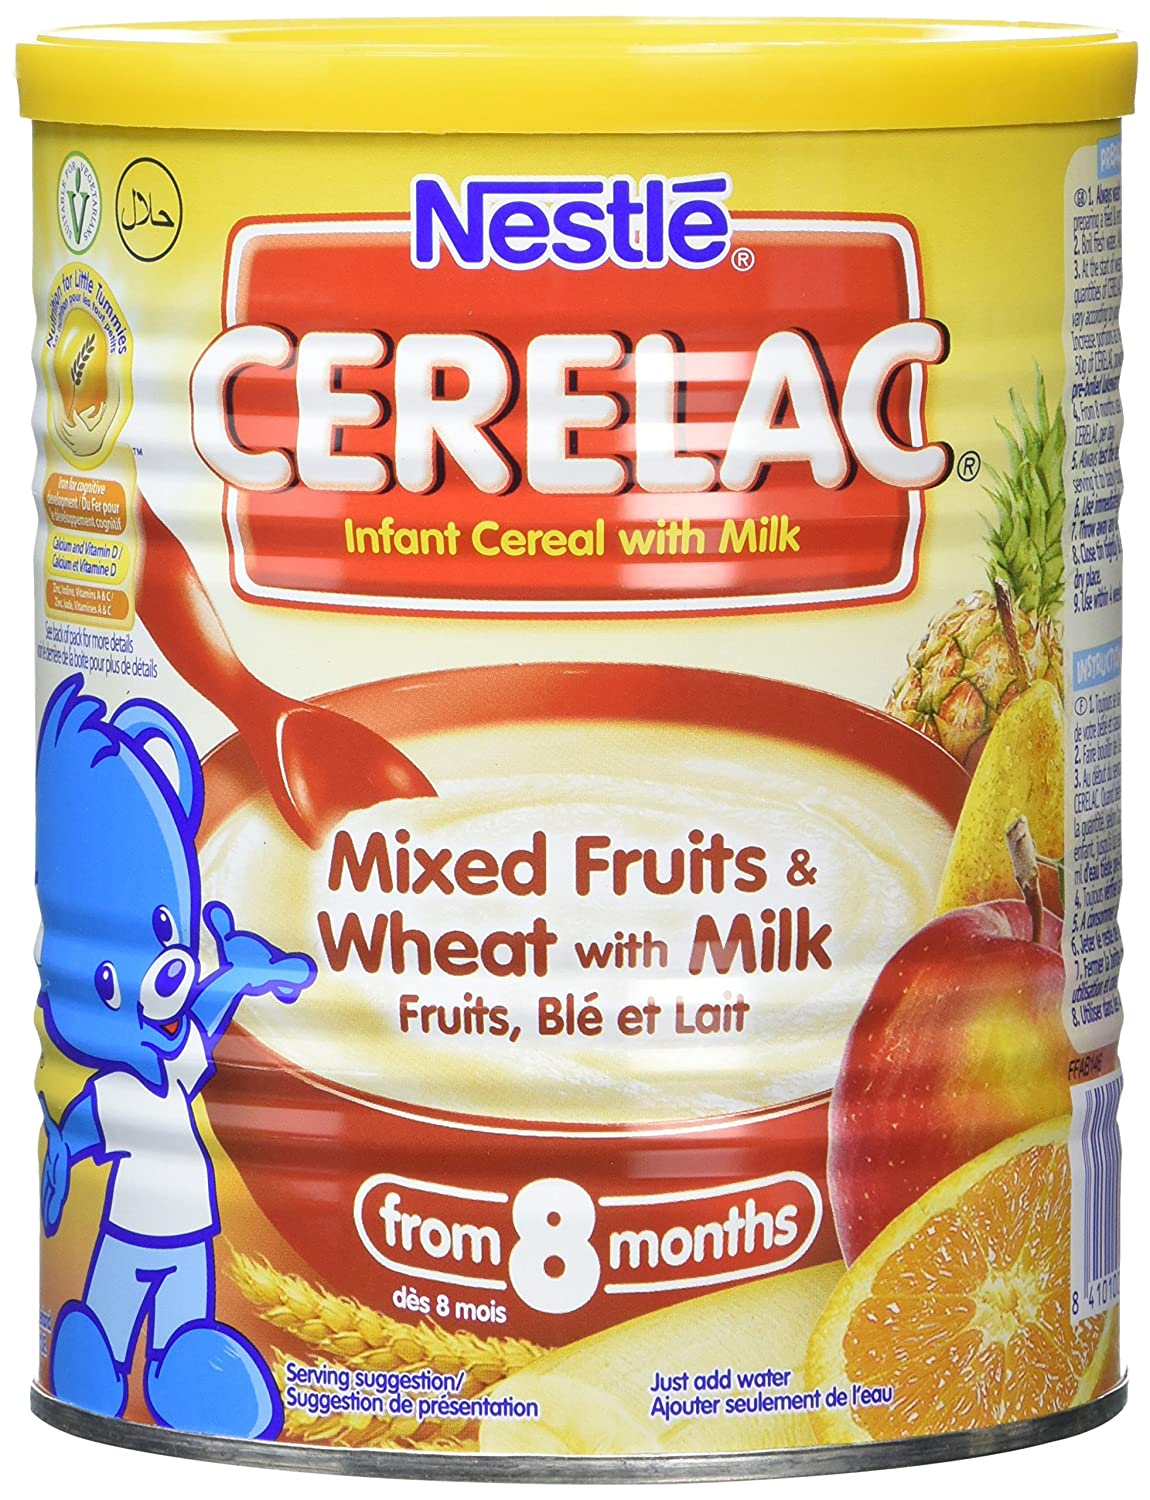 Nestlé CERELAC Mixed Fruits and Wheat with Milk Infant Cereal 400g, 8 months+ (Pack of 4) Nestle C002